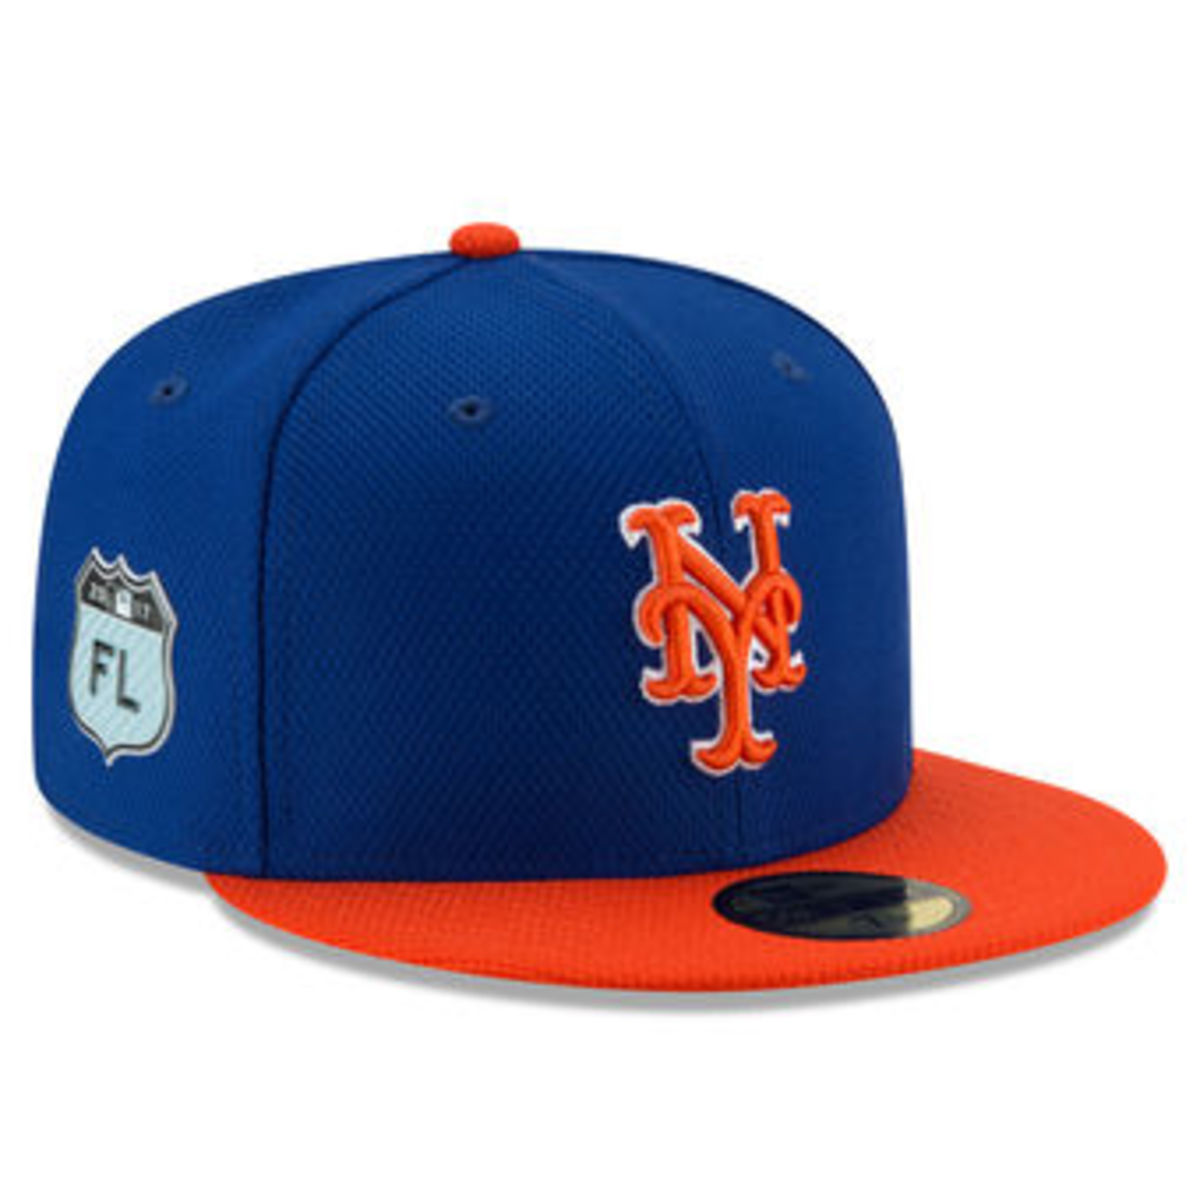 mets-spring-training-hat.jpg